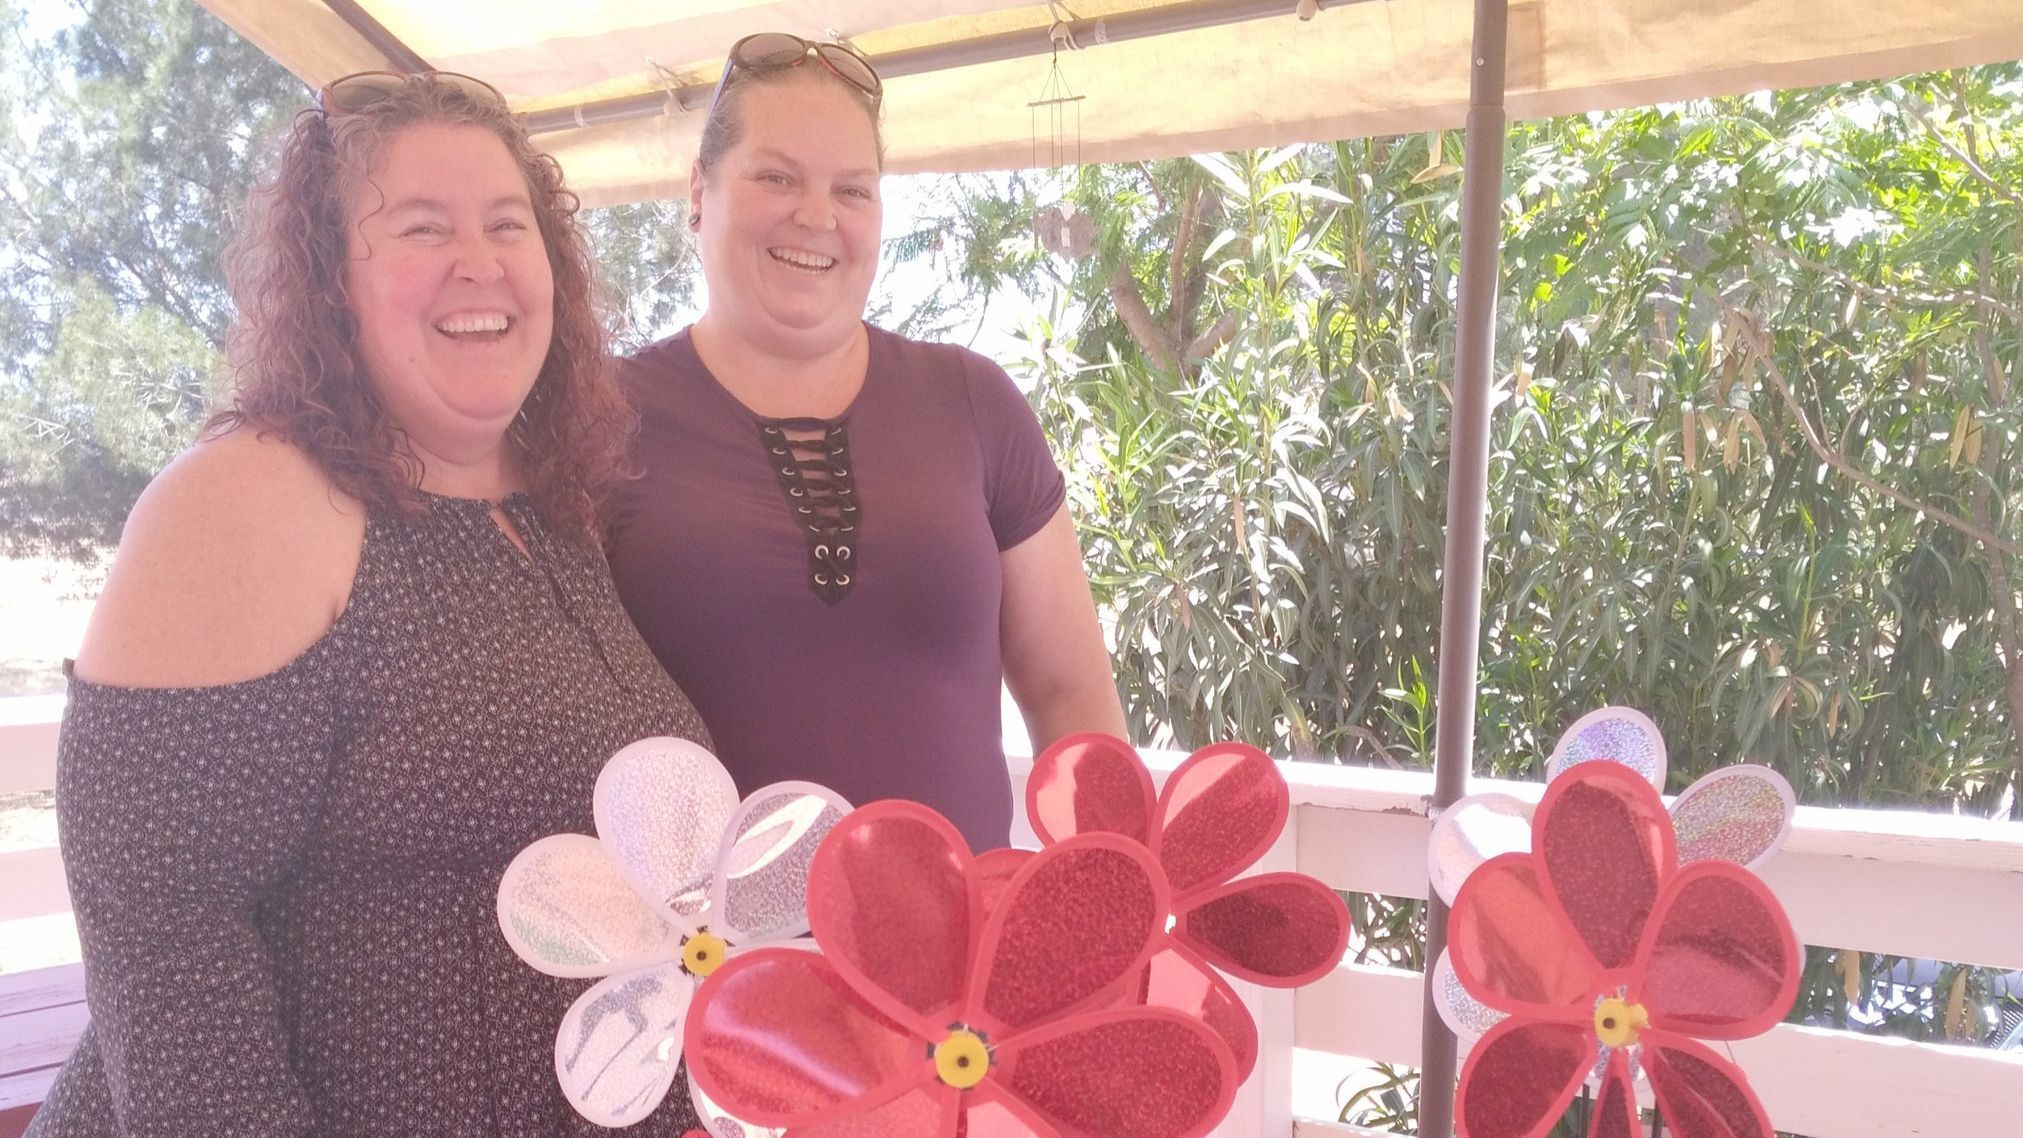 Michael's House Executive Director Rhea Tabler, left, and Backup Administrator Chelsea Clark admire centerpieces they created for the nonprofit's 40-year anniversary celebrations.